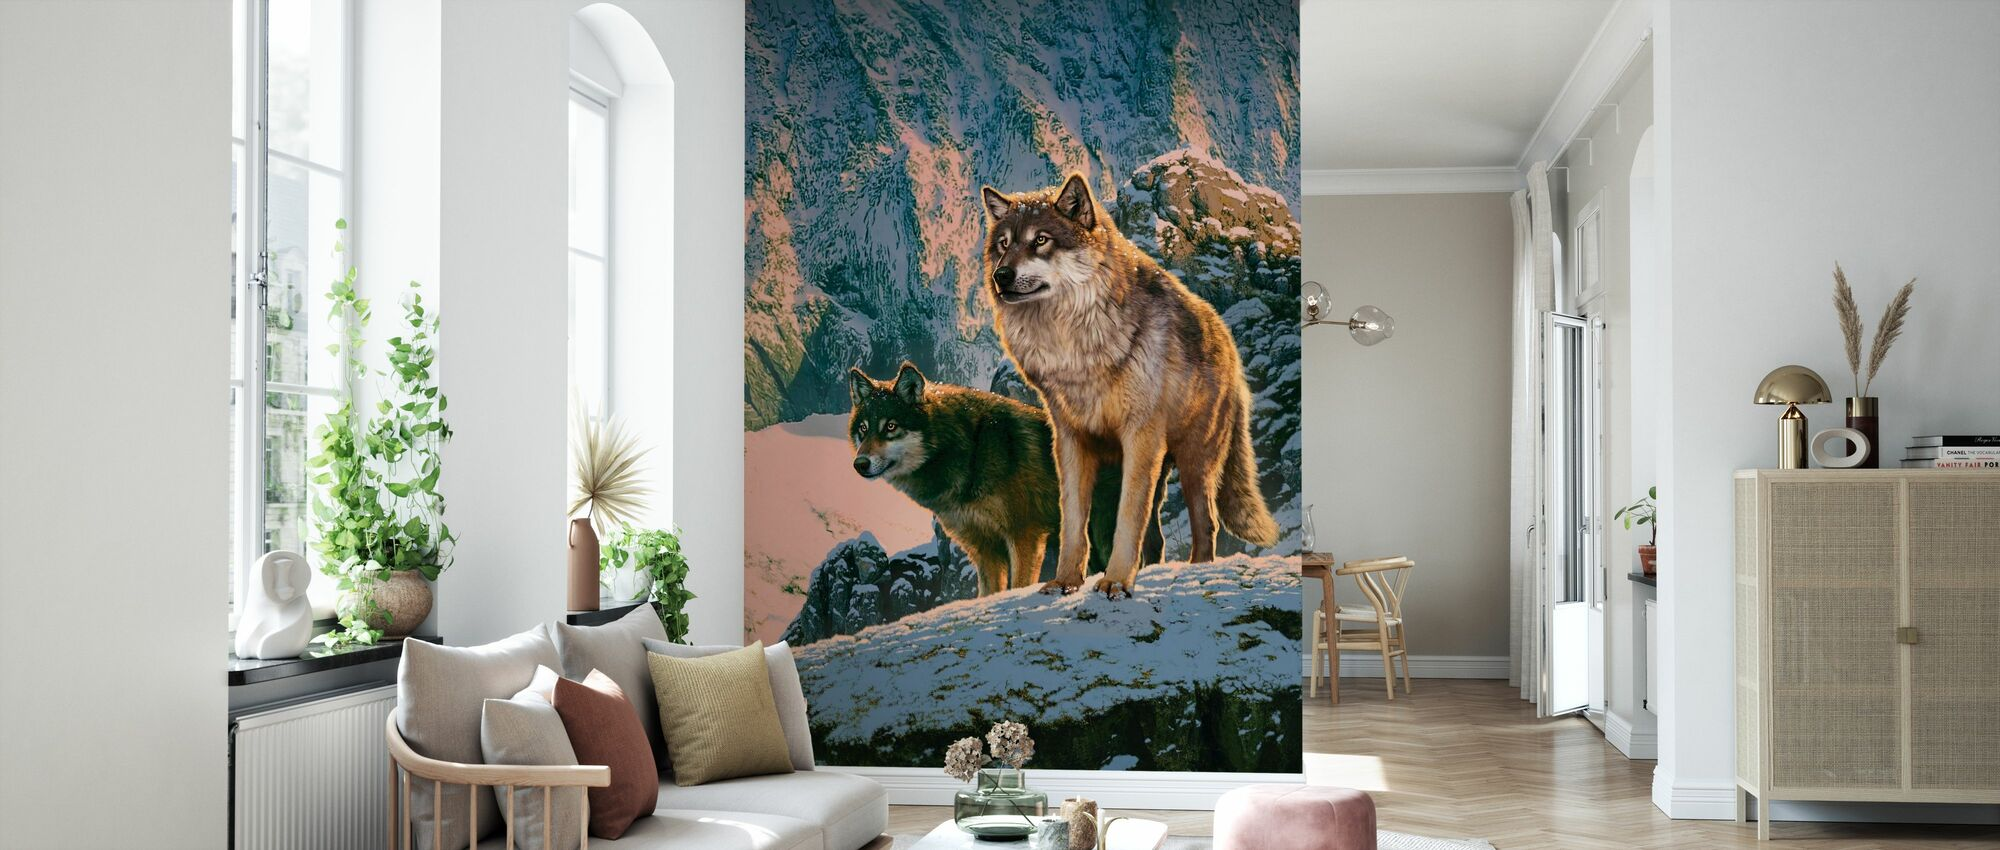 Wolf Couple in Sunset - Wallpaper - Living Room